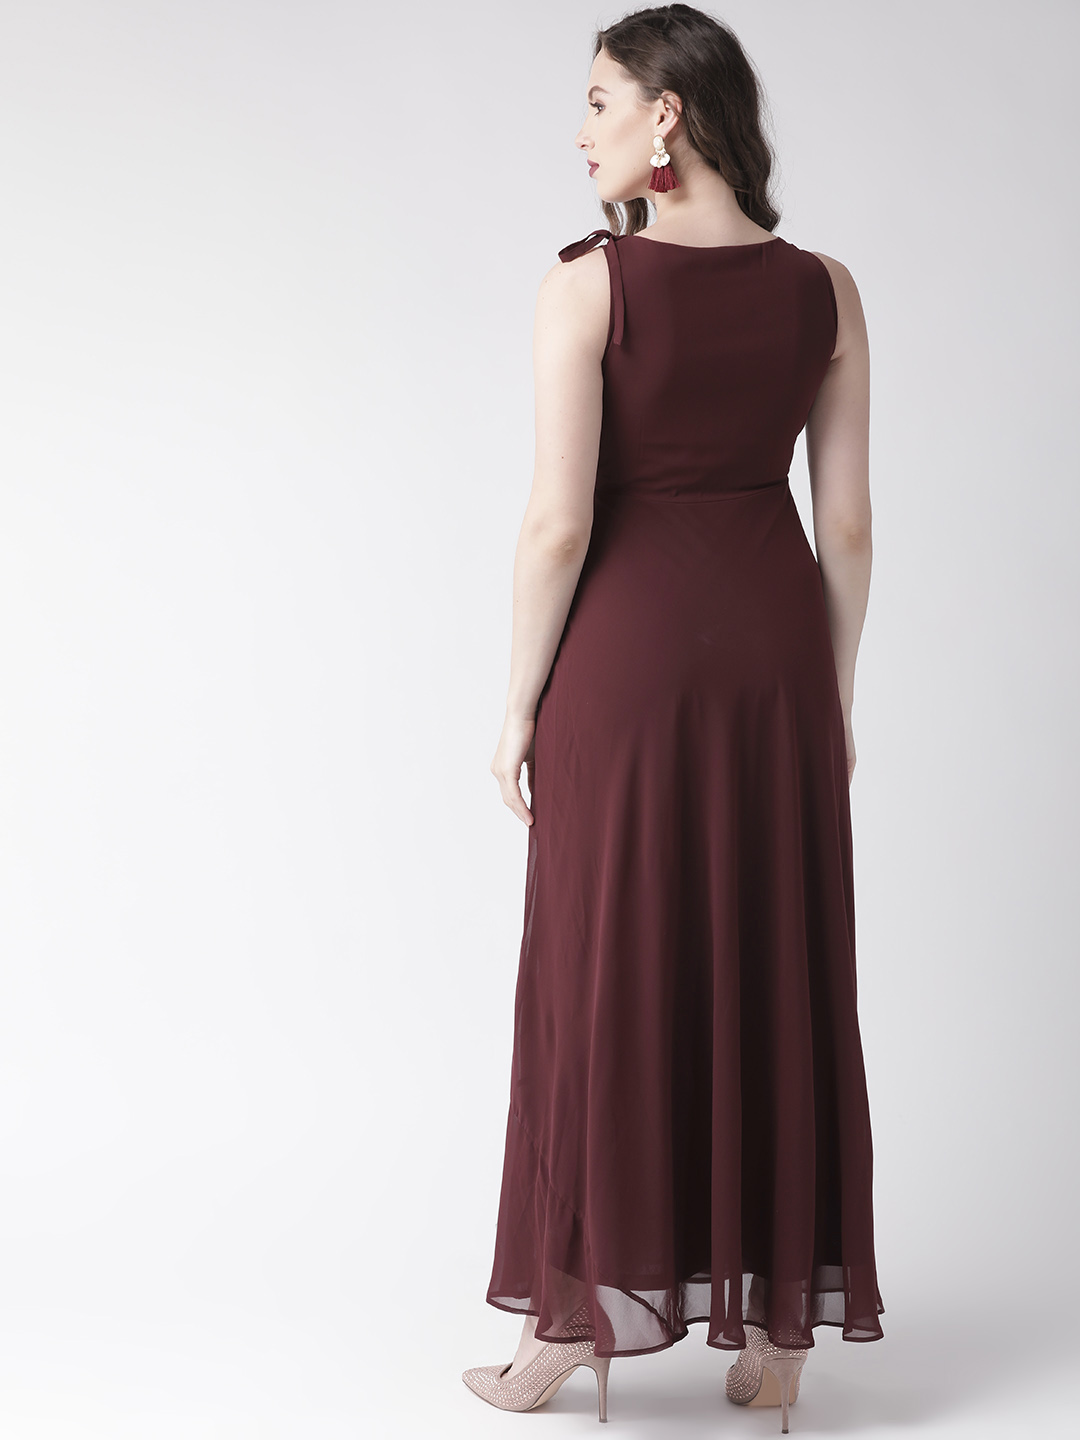 Dresses-Maroon Ready For The Royal Ball Maxi Dress2